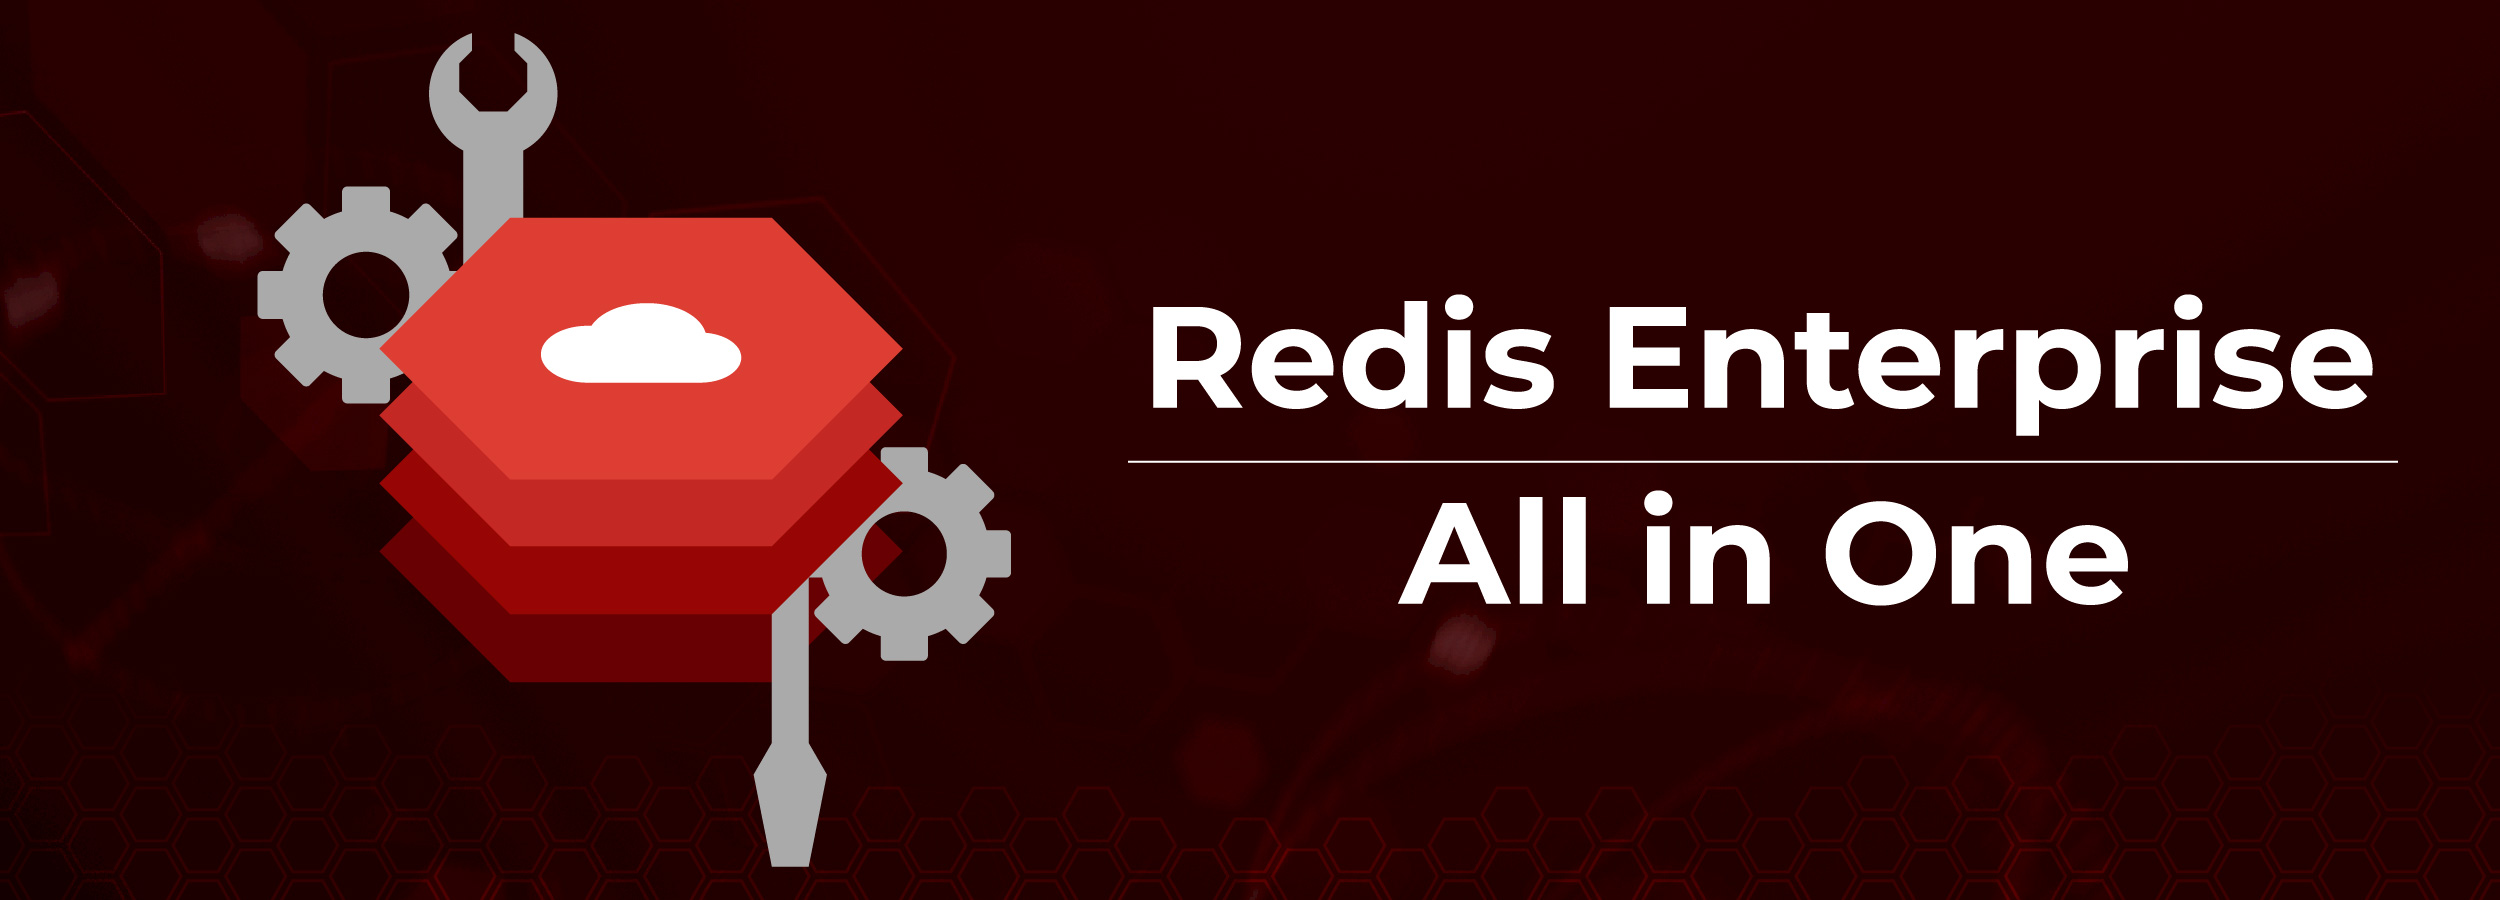 Redis Enterprise | All in One